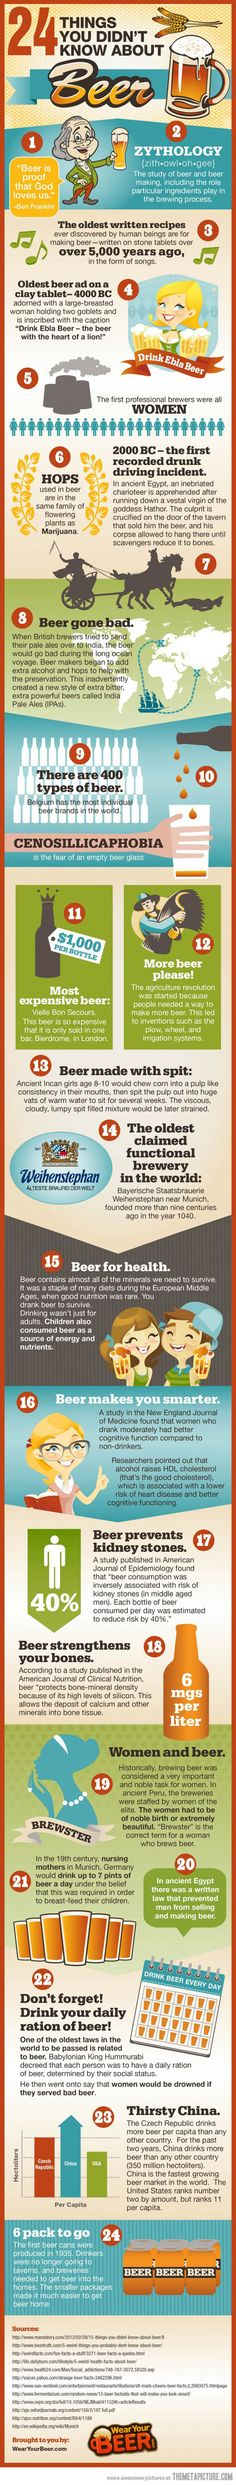 24 things you didn't know about beer.  ~~> I don't know if this is true or not, but it's a good excuse to have another... for medicinal purposes.